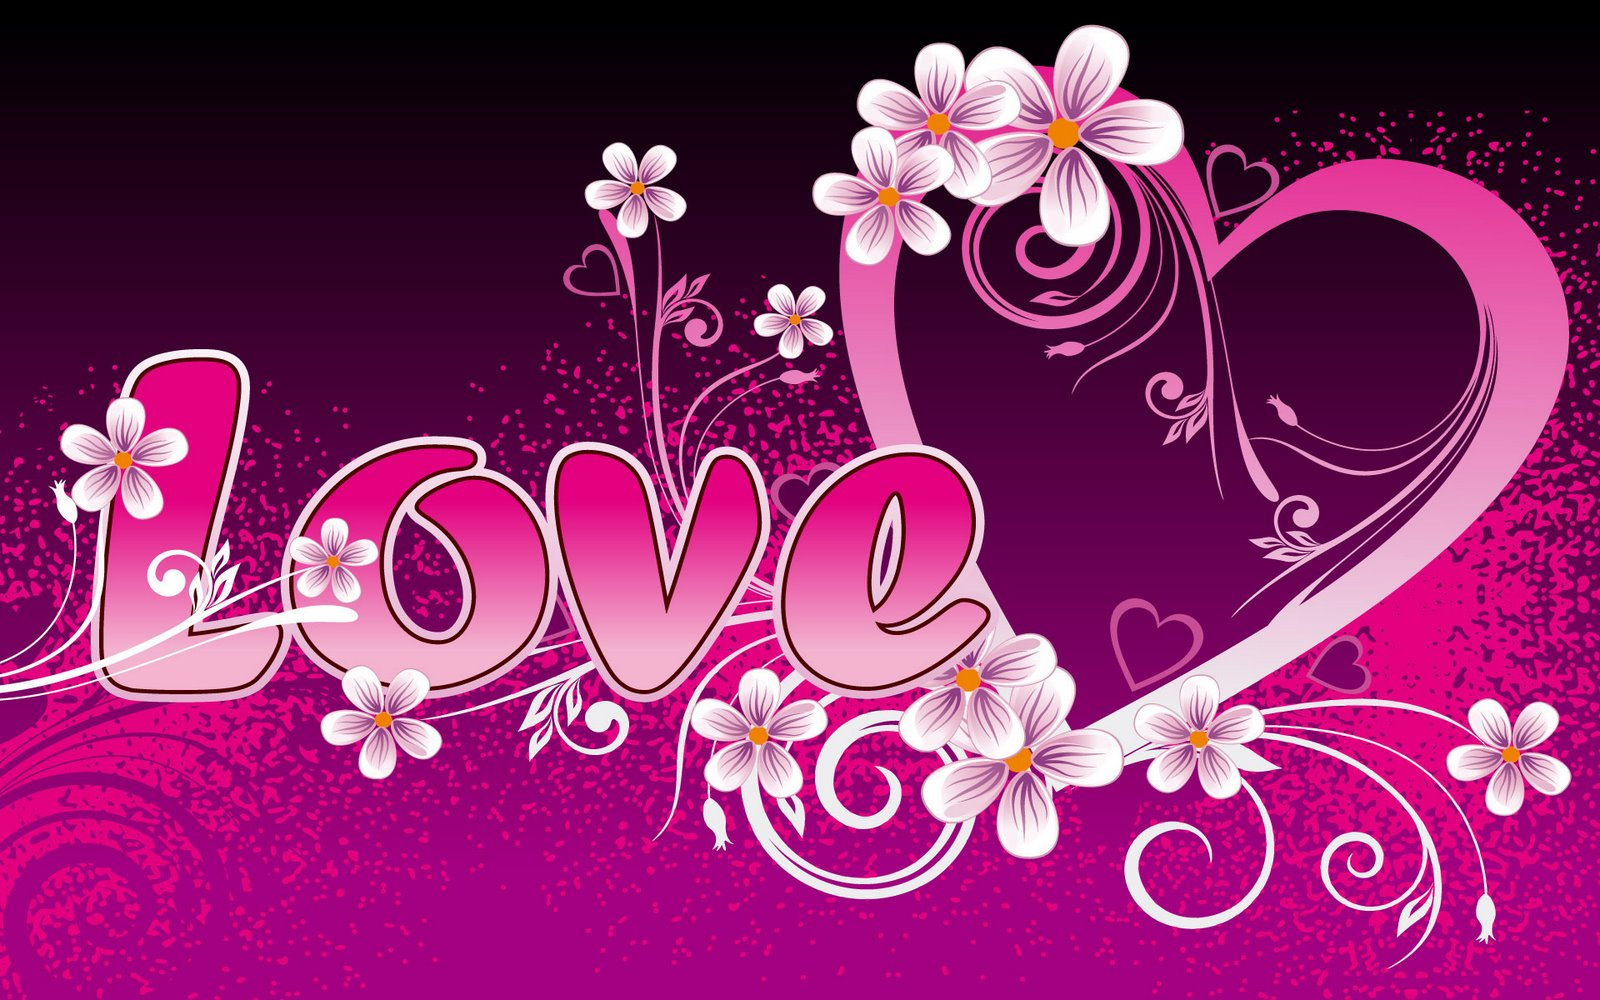 K Love Wallpaper Wallpapersafari